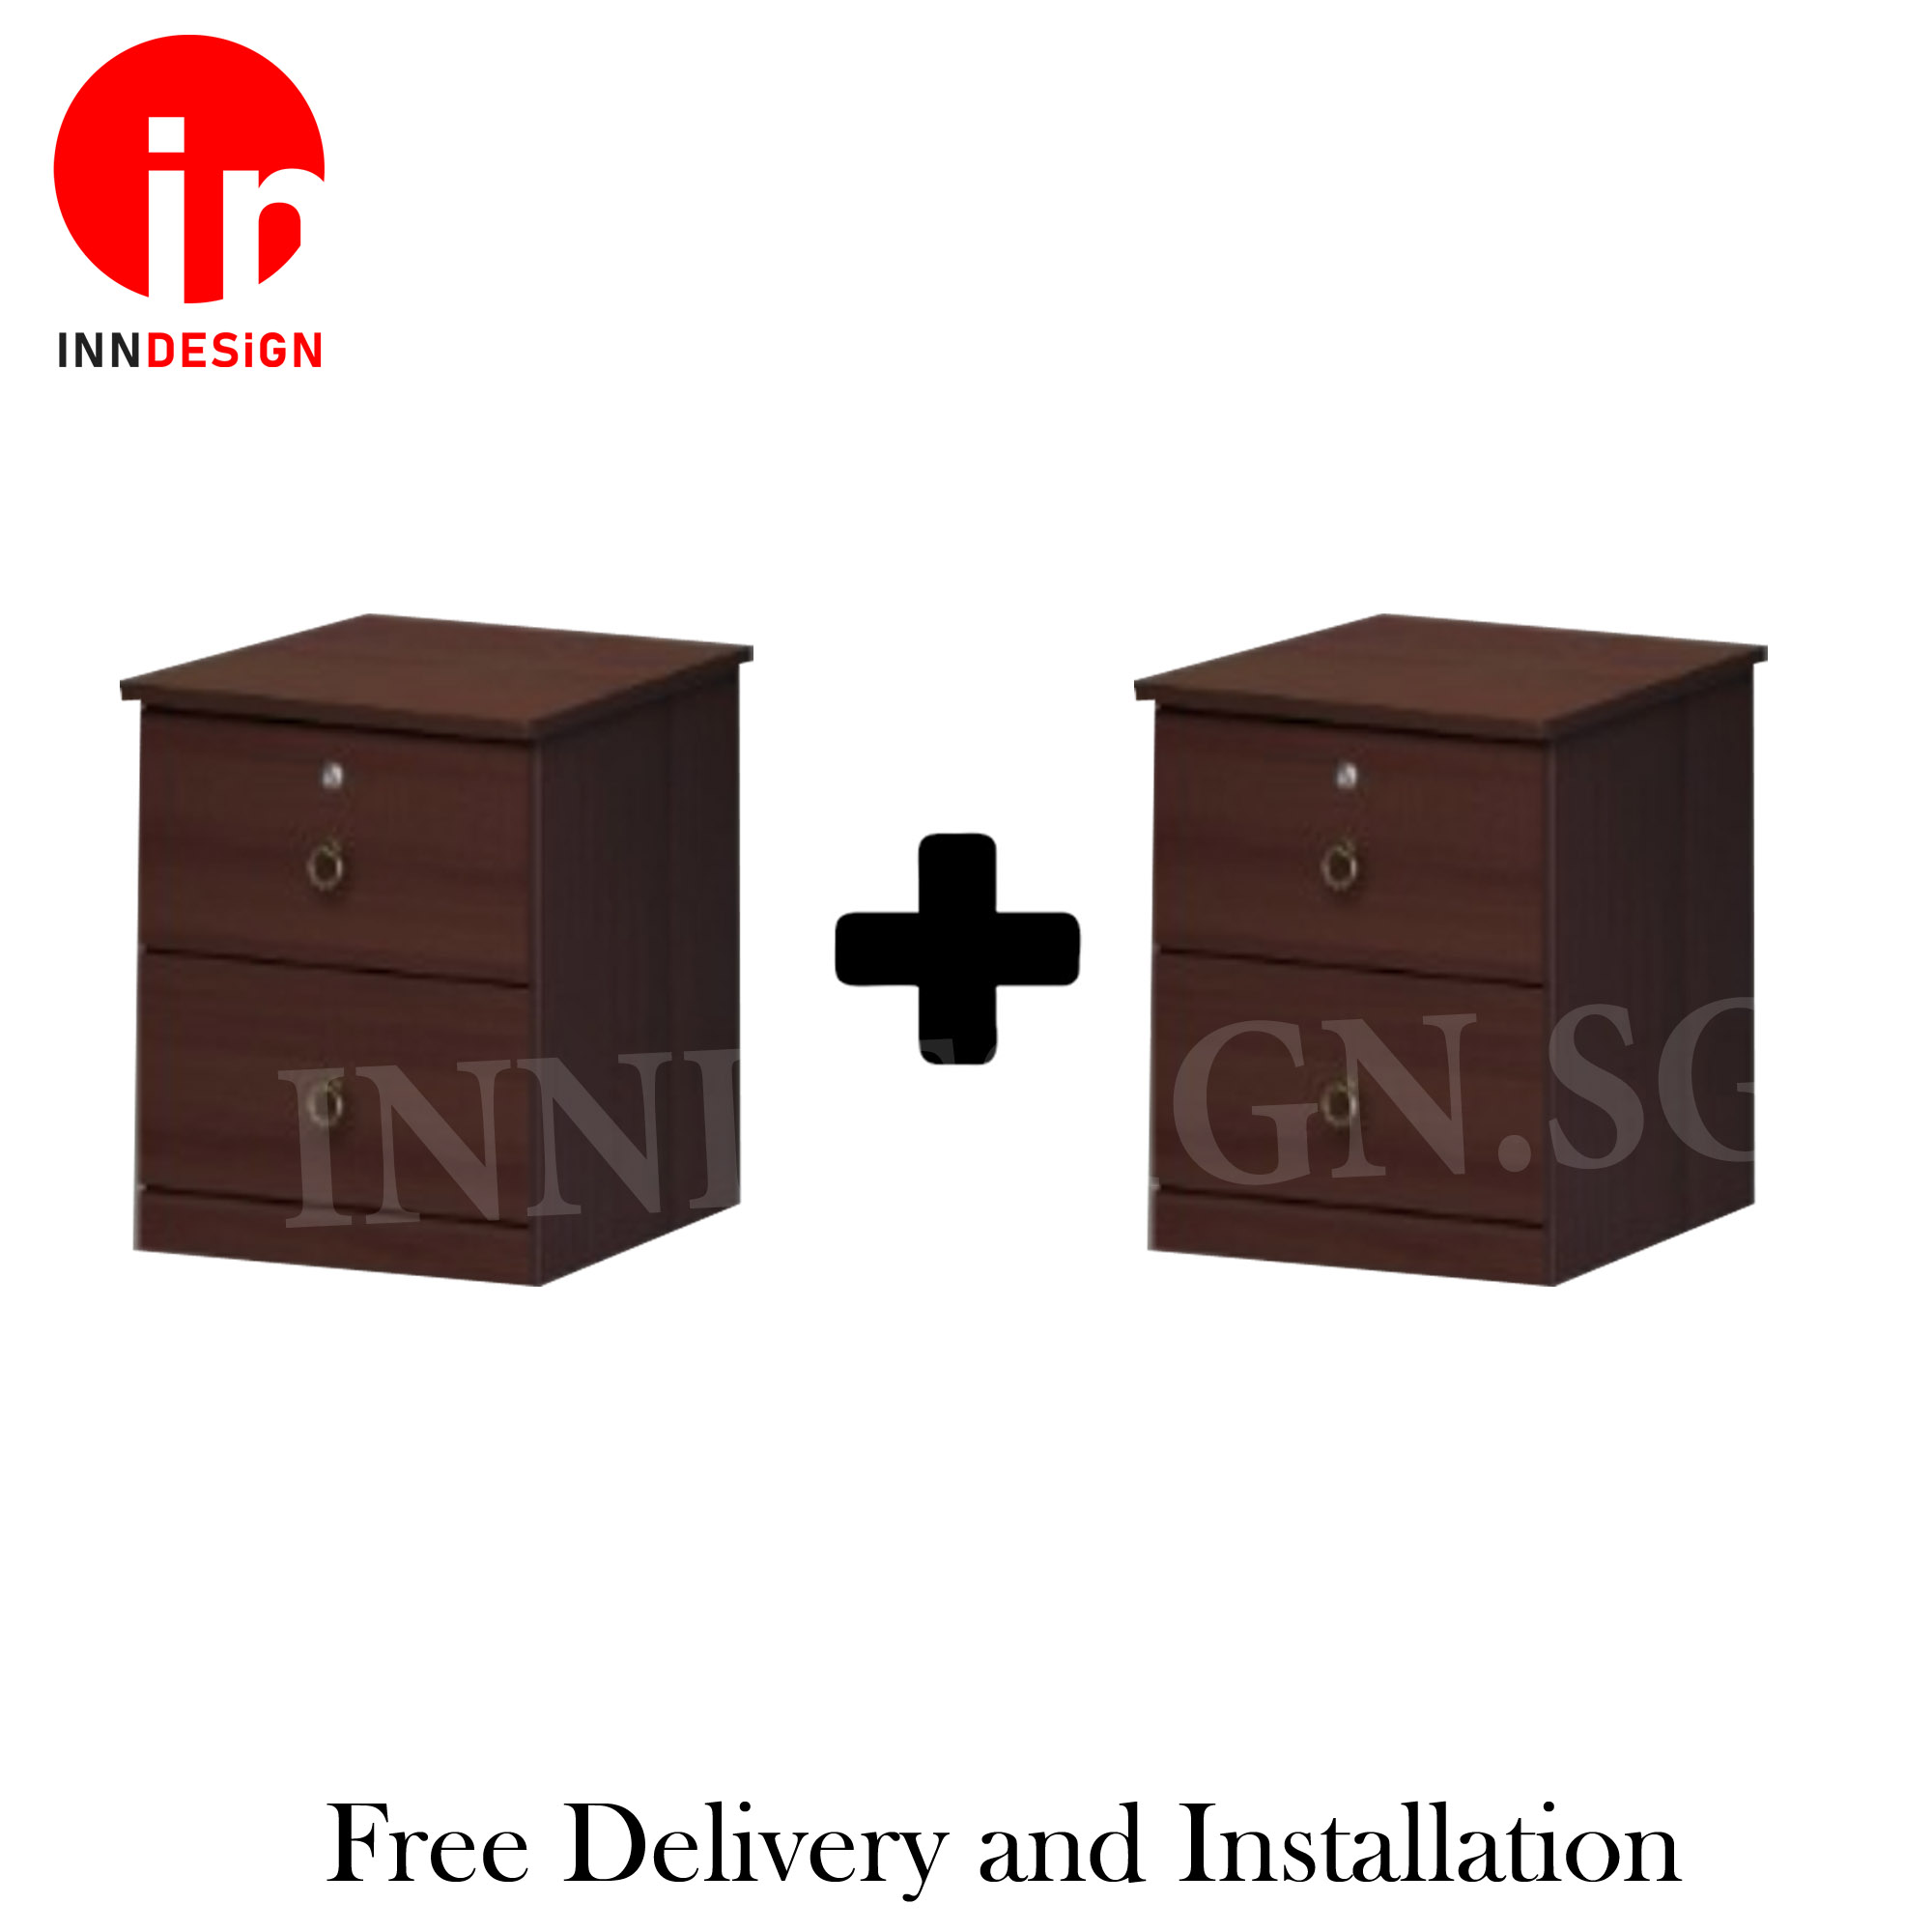 Belinde 2 Units Bedside Table / Side Table / Drawer / Cabinet / Bed Side Table (Free Delivery and Installation)